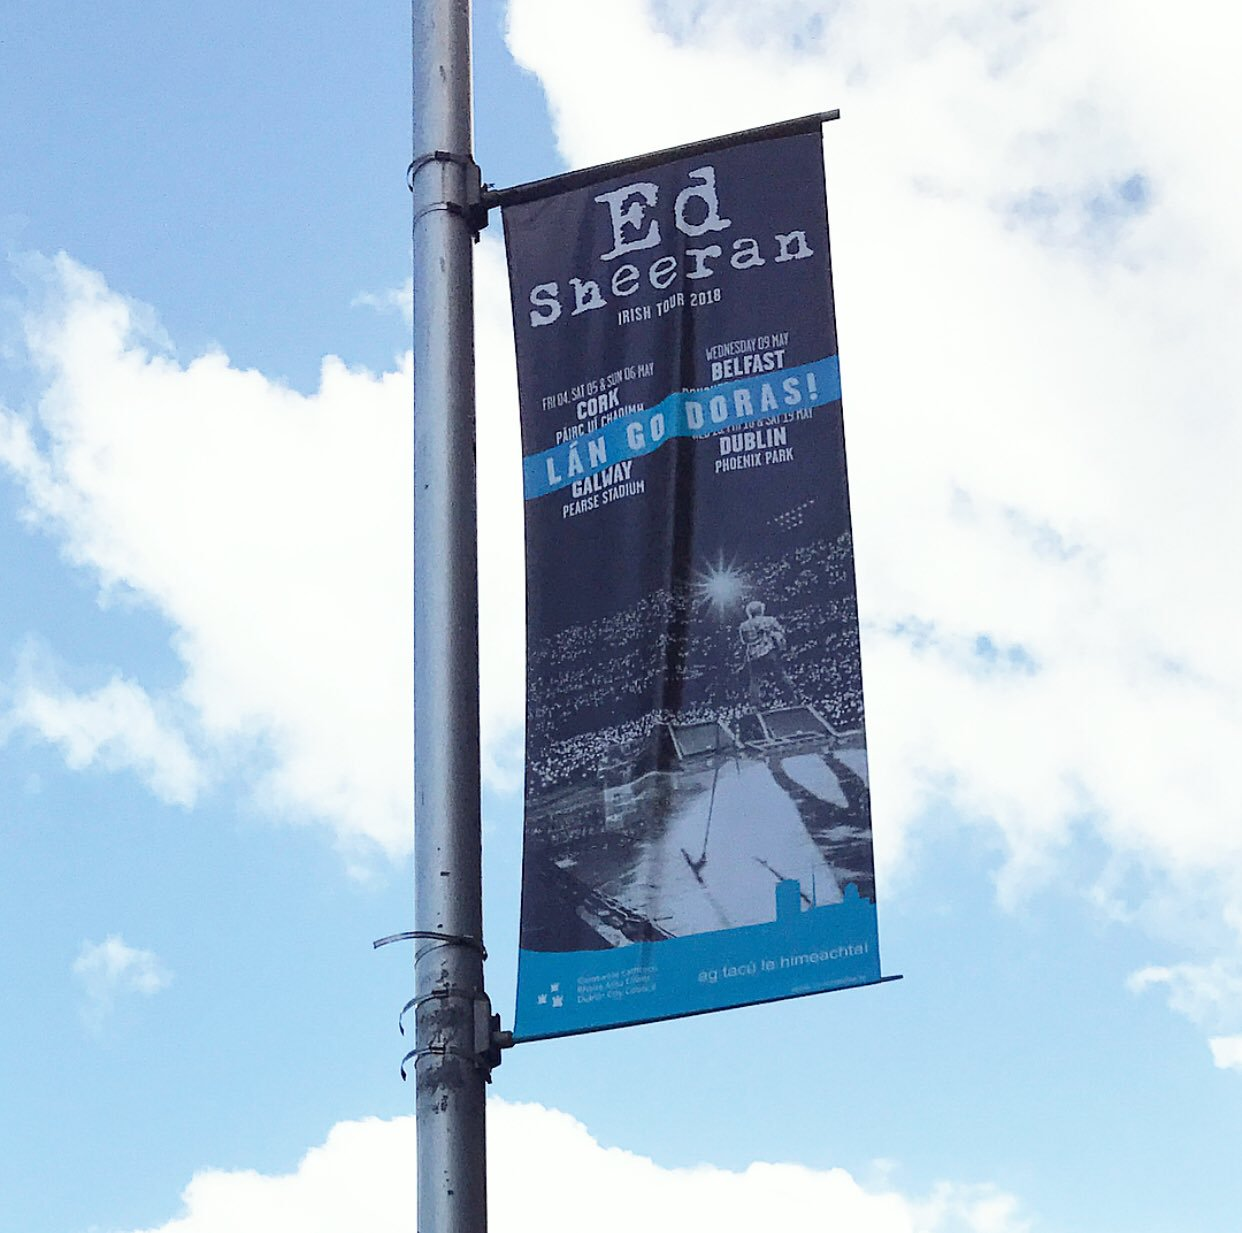 CCivicmedia lamppost banners